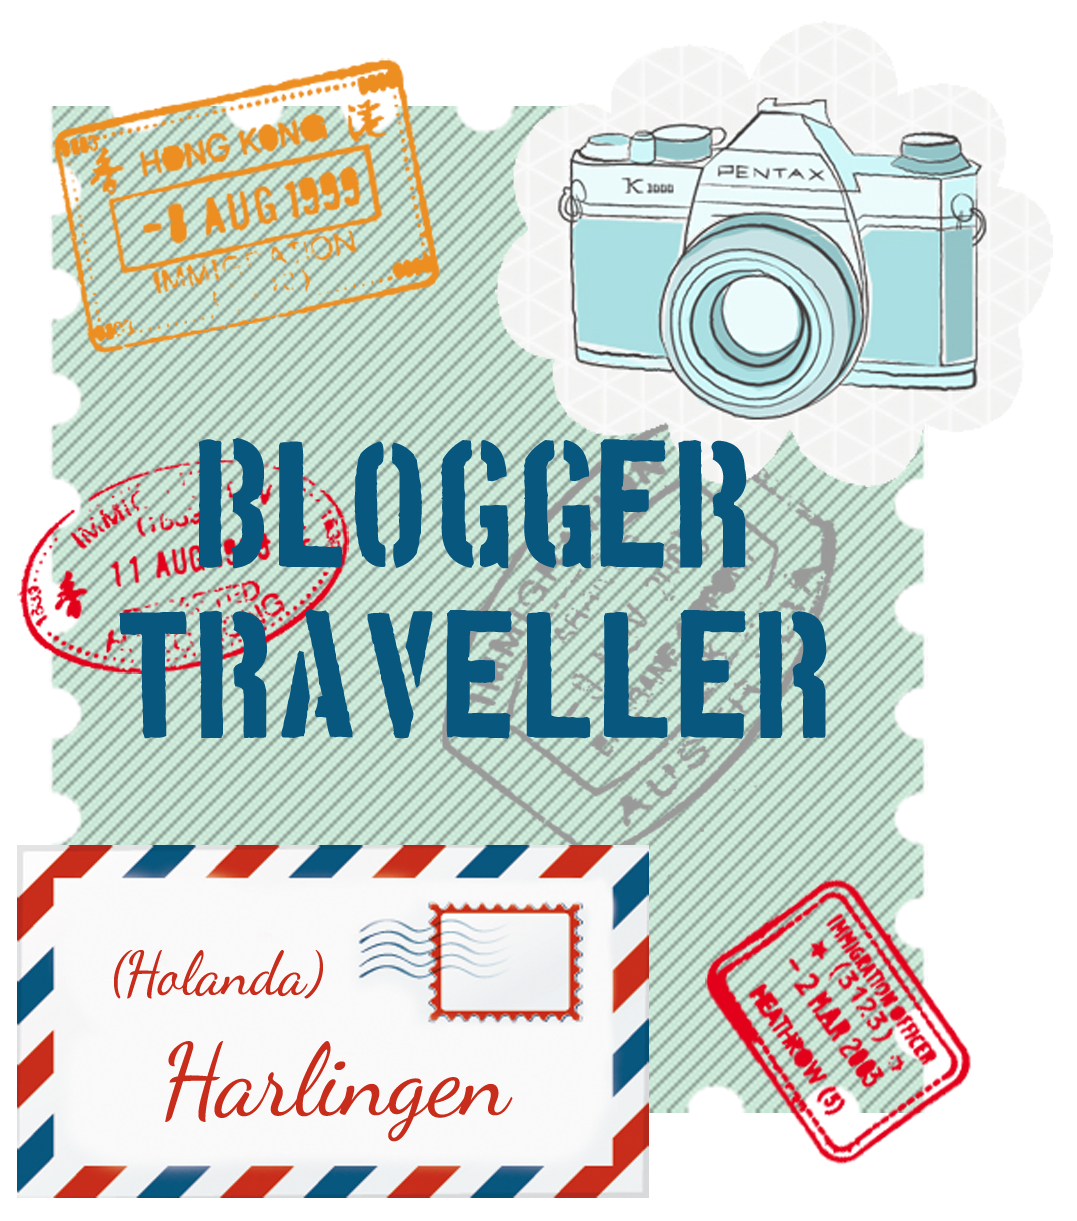 Blogger Traveller Harlingen